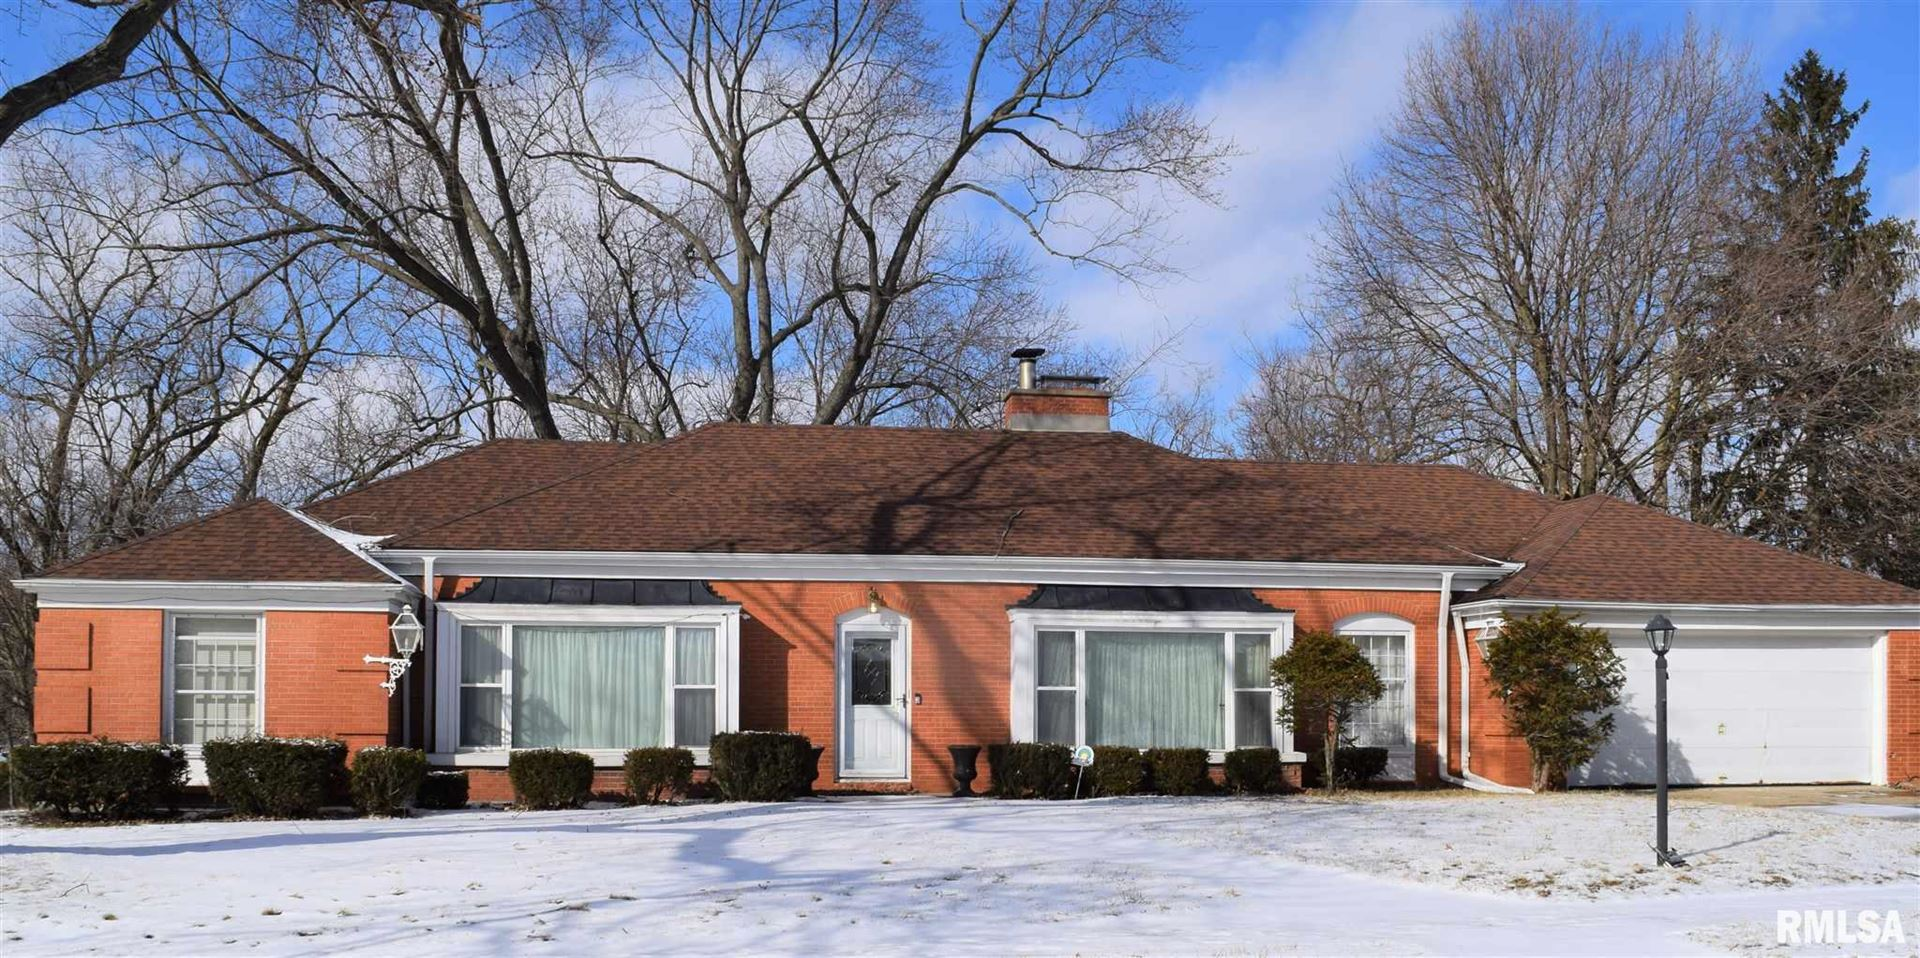 1317 W HOLLY HEDGES Drive, Peoria, IL 61614 - #: PA1222111